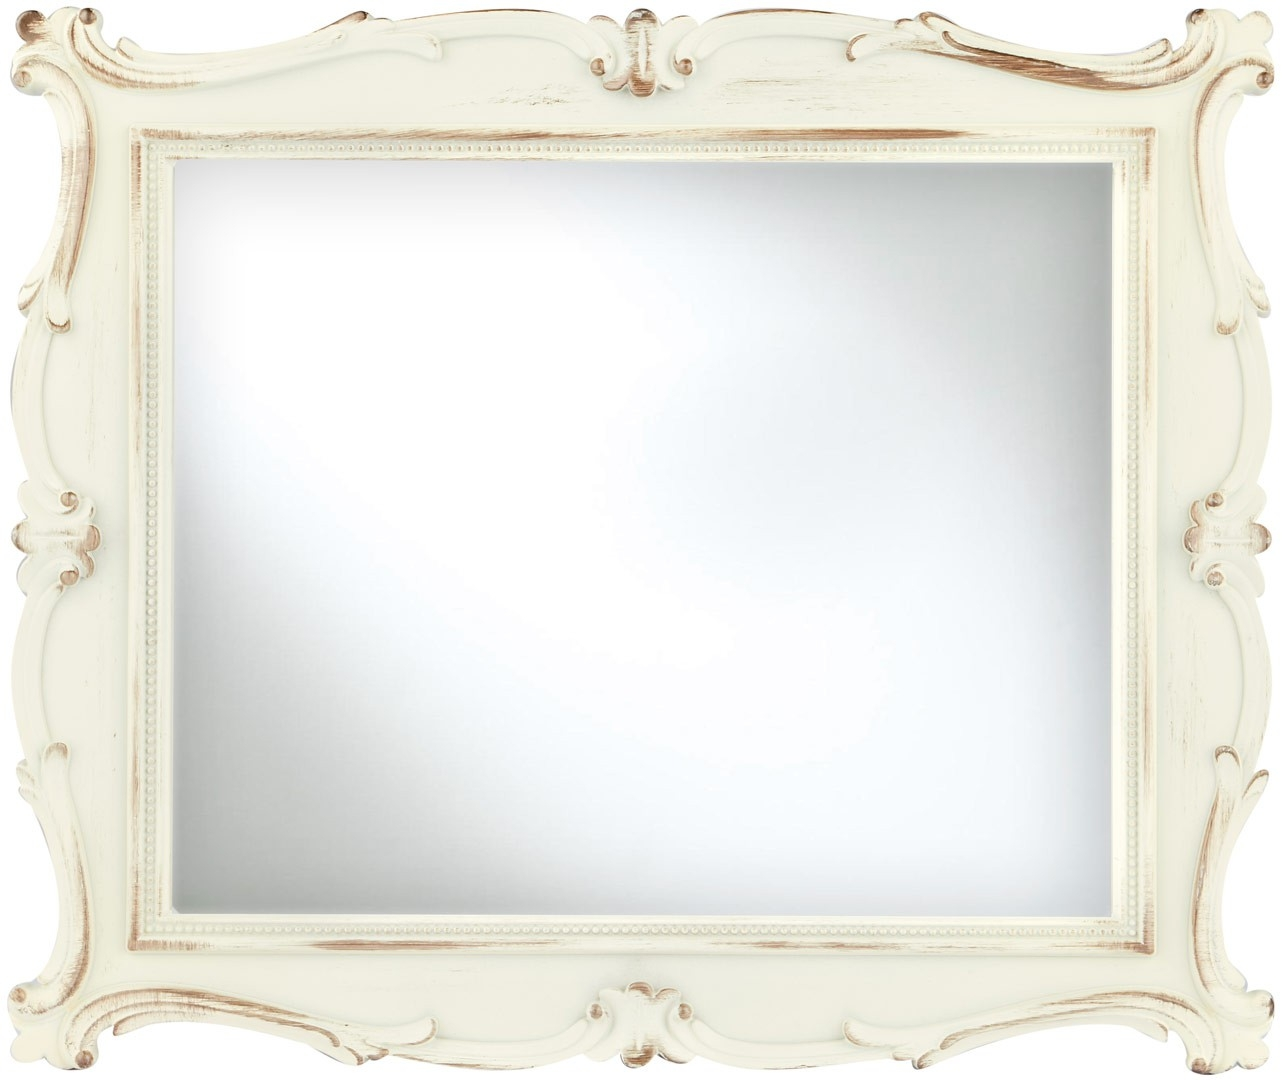 Cream Antique Mirror 20x25cm With Regard To Cream Antique Mirror (View 8 of 15)